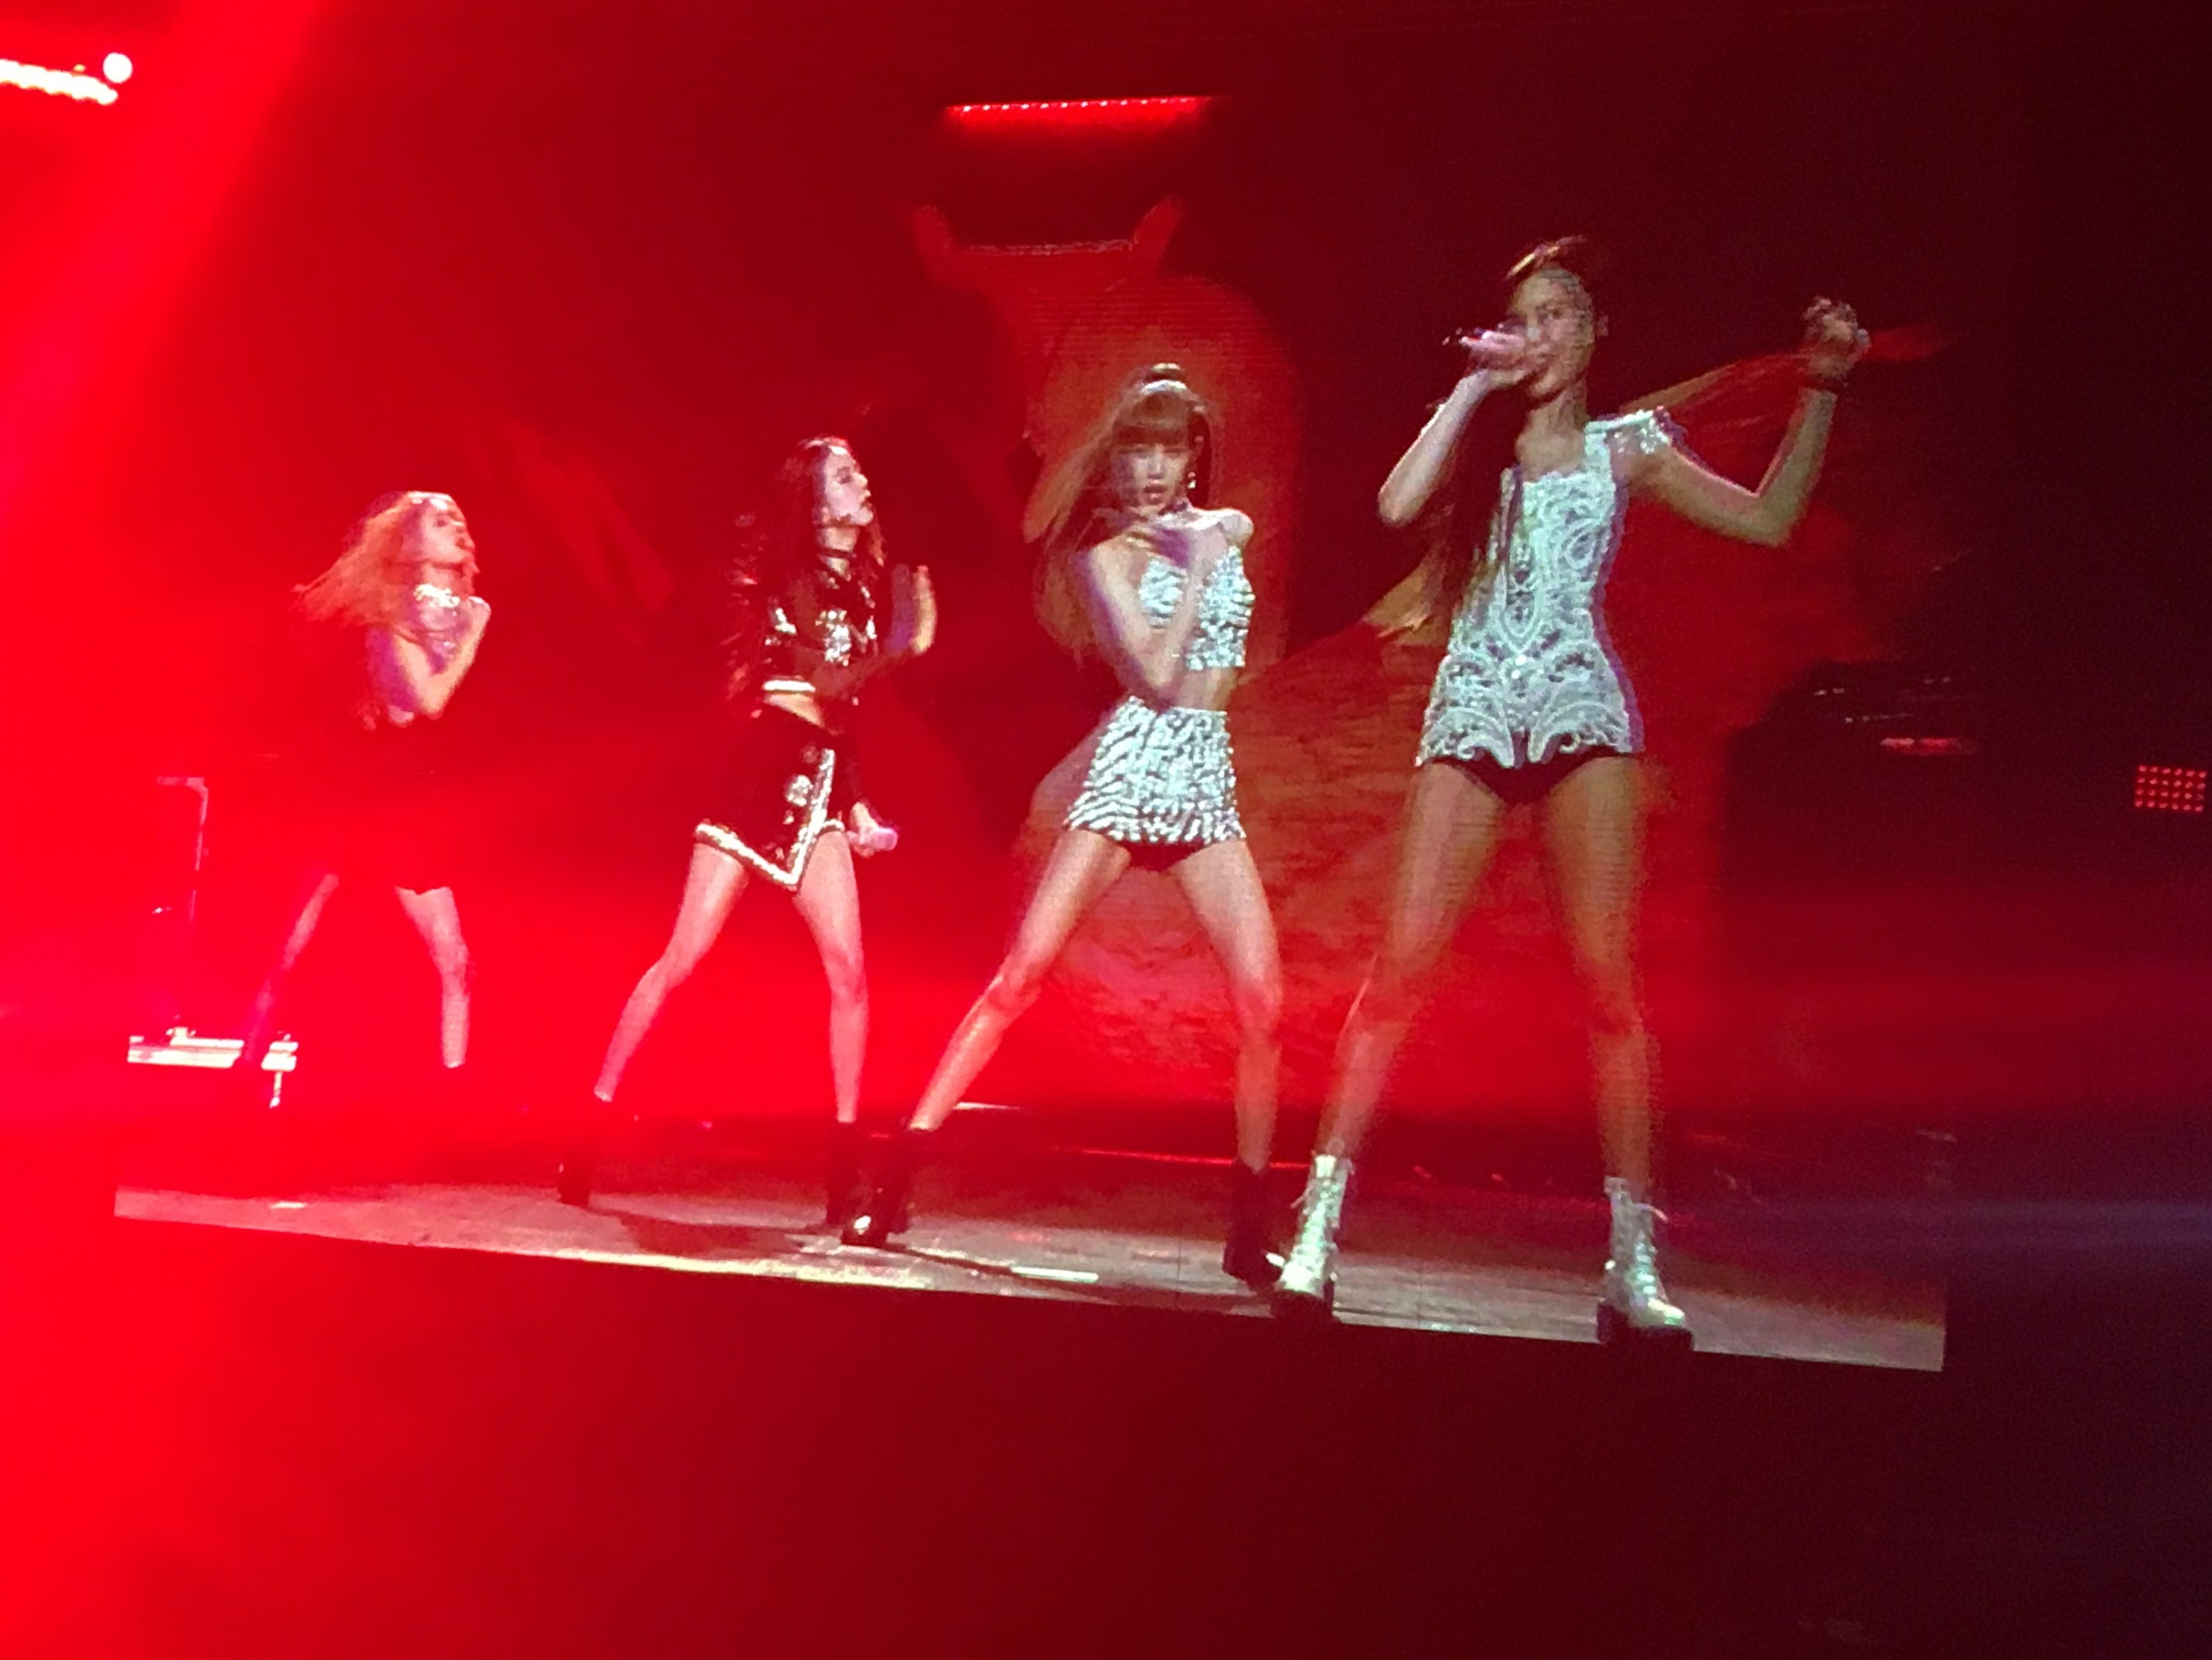 BLACKPINK performs at the 2019 Coachella Valley Music and Arts Festival at the Empire Polo Club in Indio, Calif.